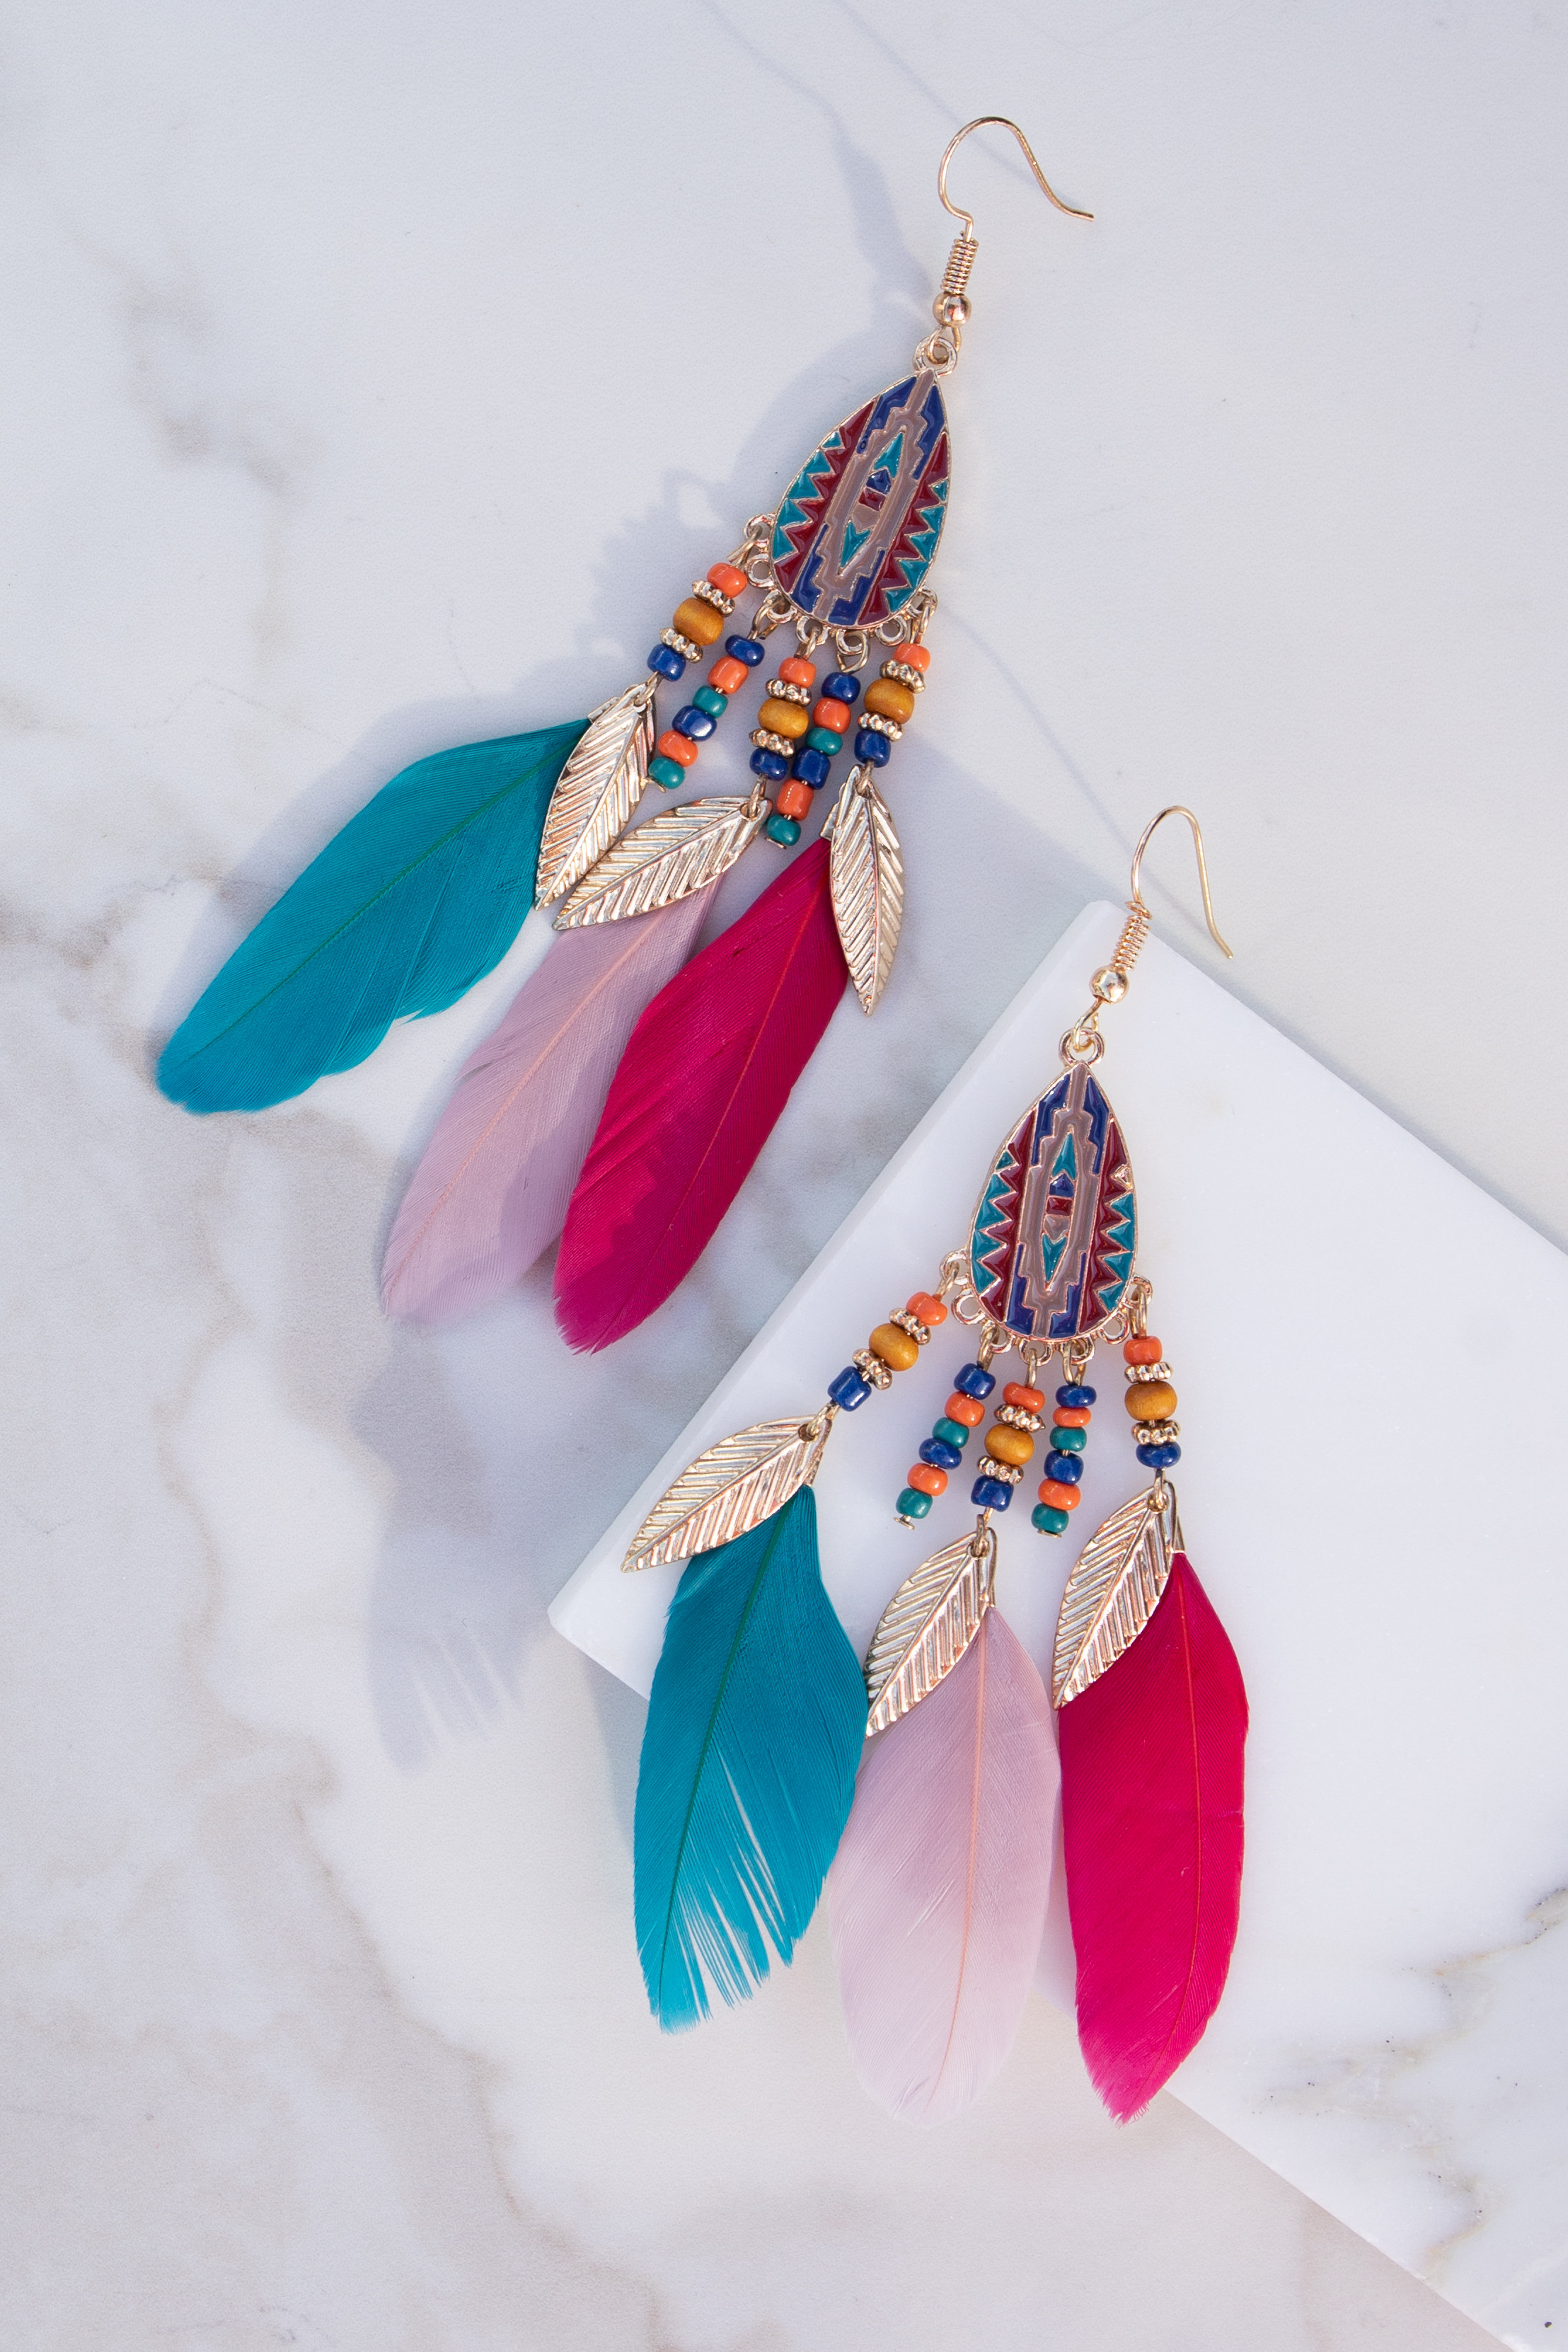 Multicolor Dangle Earrings with Aztec and Feather Details